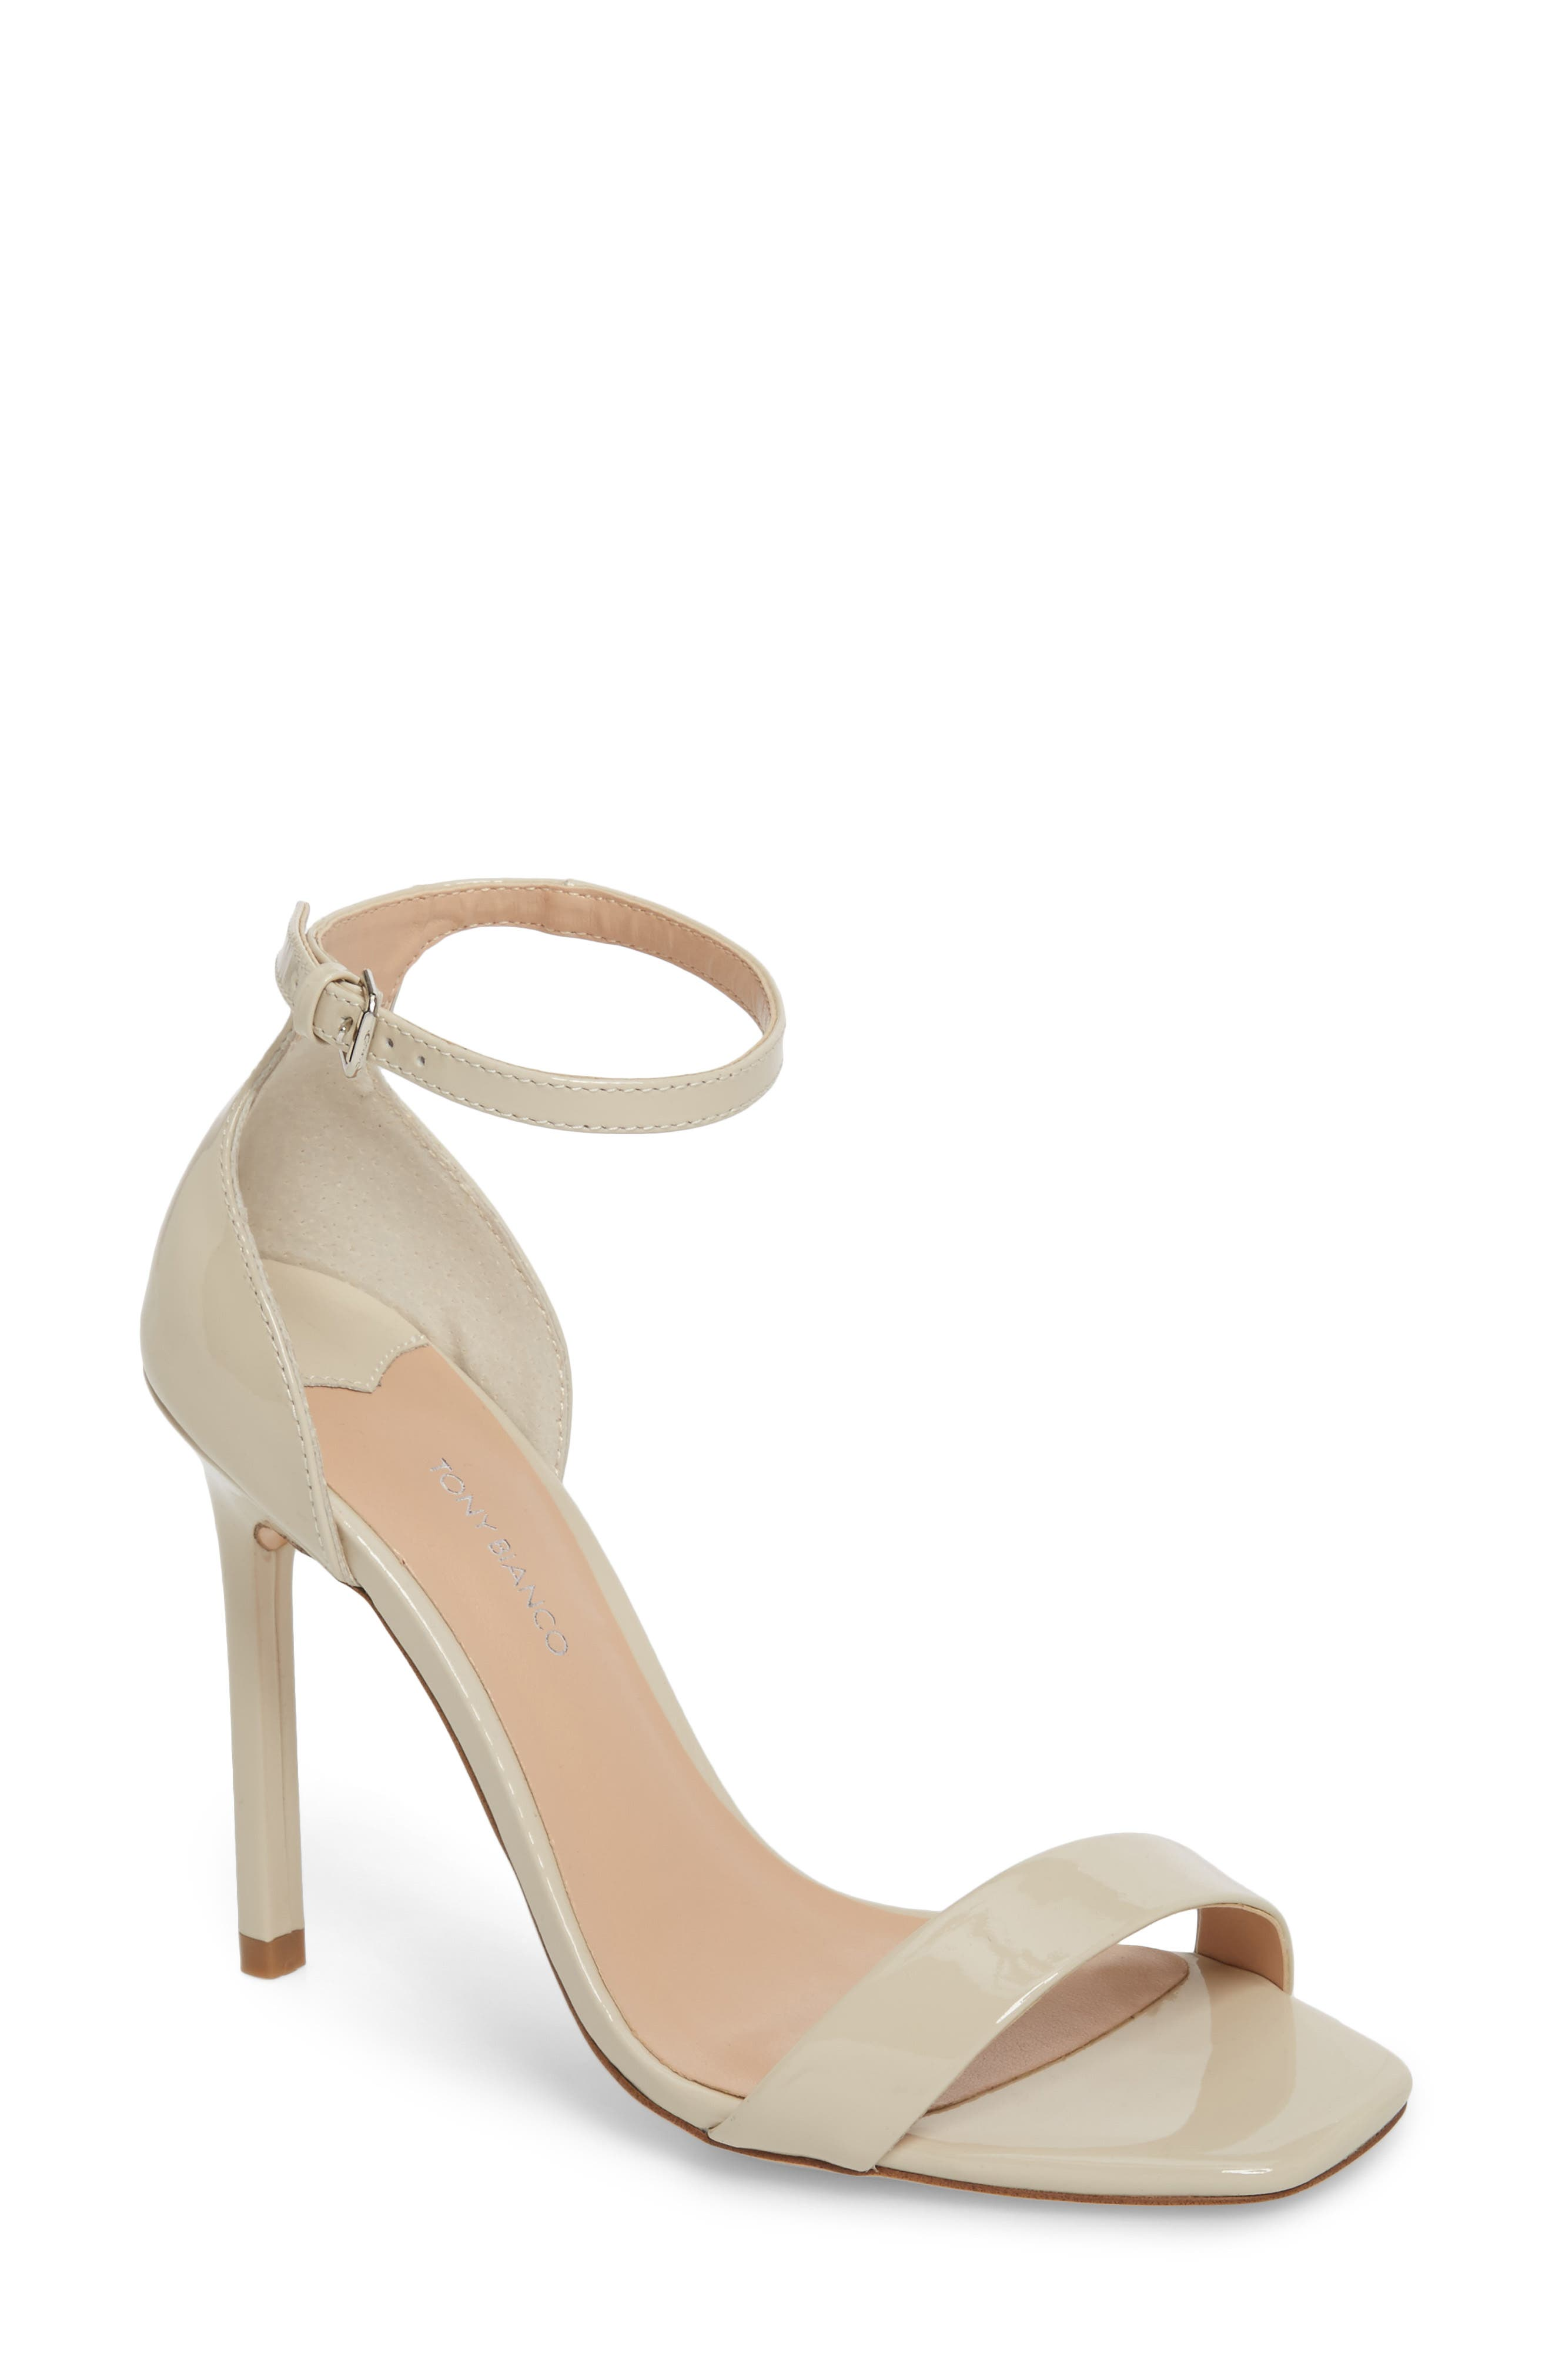 Sacha Ankle Strap Sandal,                         Main,                         color, Oyster Patent Leather